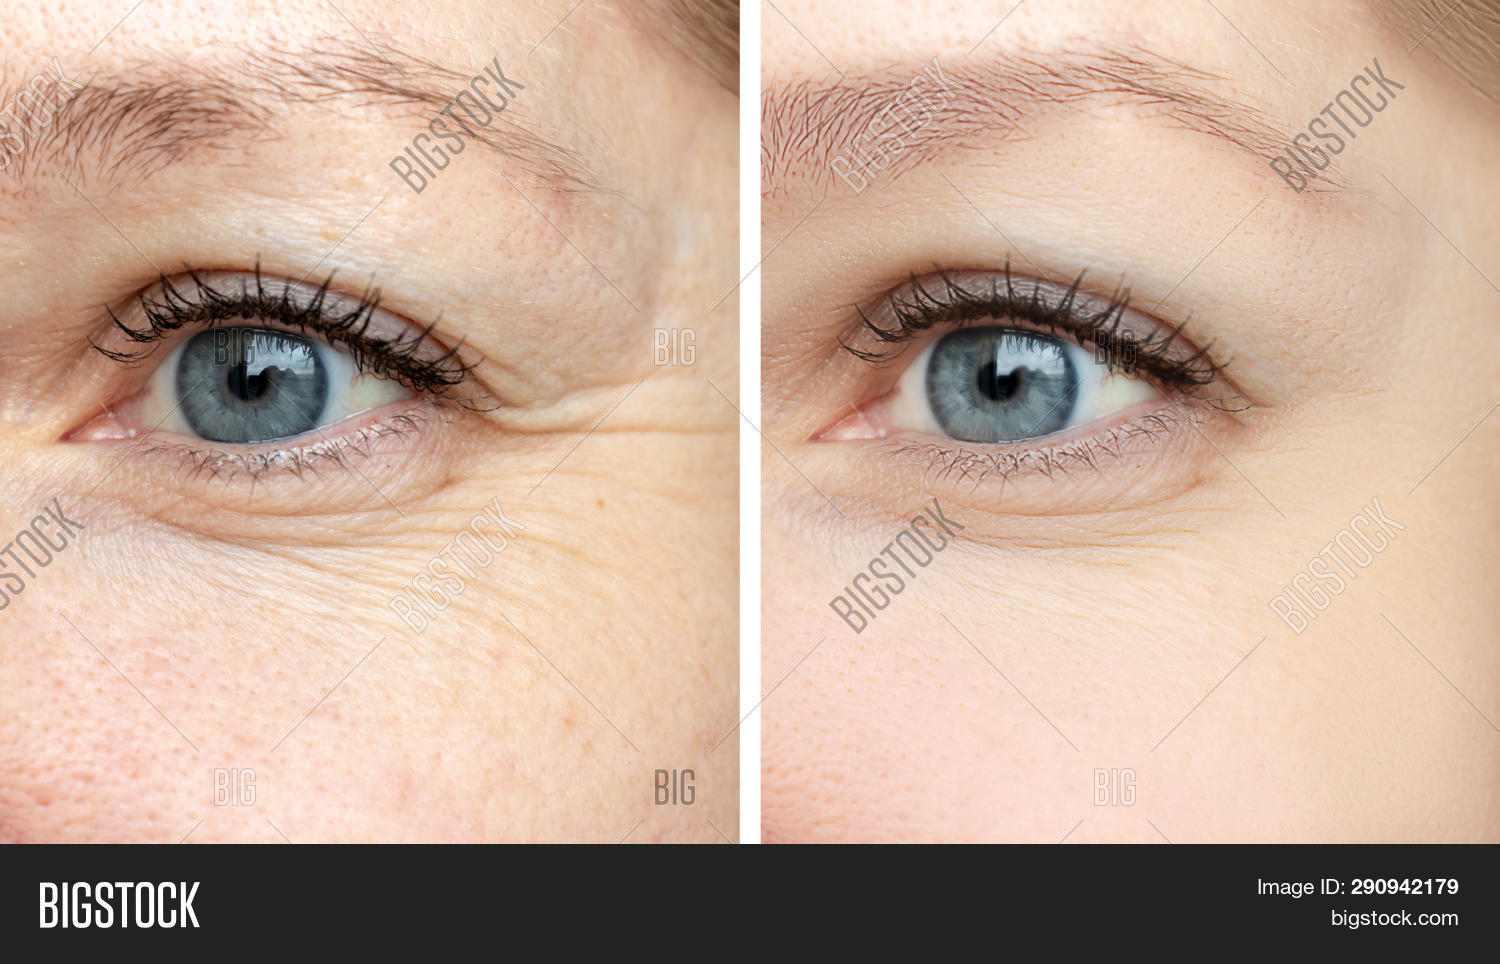 acid,adult,age,aging,anti,antiaging,beautician,beauty,biorevitalization,blepharoplasty,care,caucasian,collagen,correction,cosmetic,cosmetology,crease,dermatology,difference,effect,eye,face,facial,female,filler,freckles,health,lift,lifting,patient,procedure,regeneration,rejuvenation,removal,results,revitalization,skin,surgeon,surgery,therapy,treatment,woman,wrinkle,wrinkled,youth